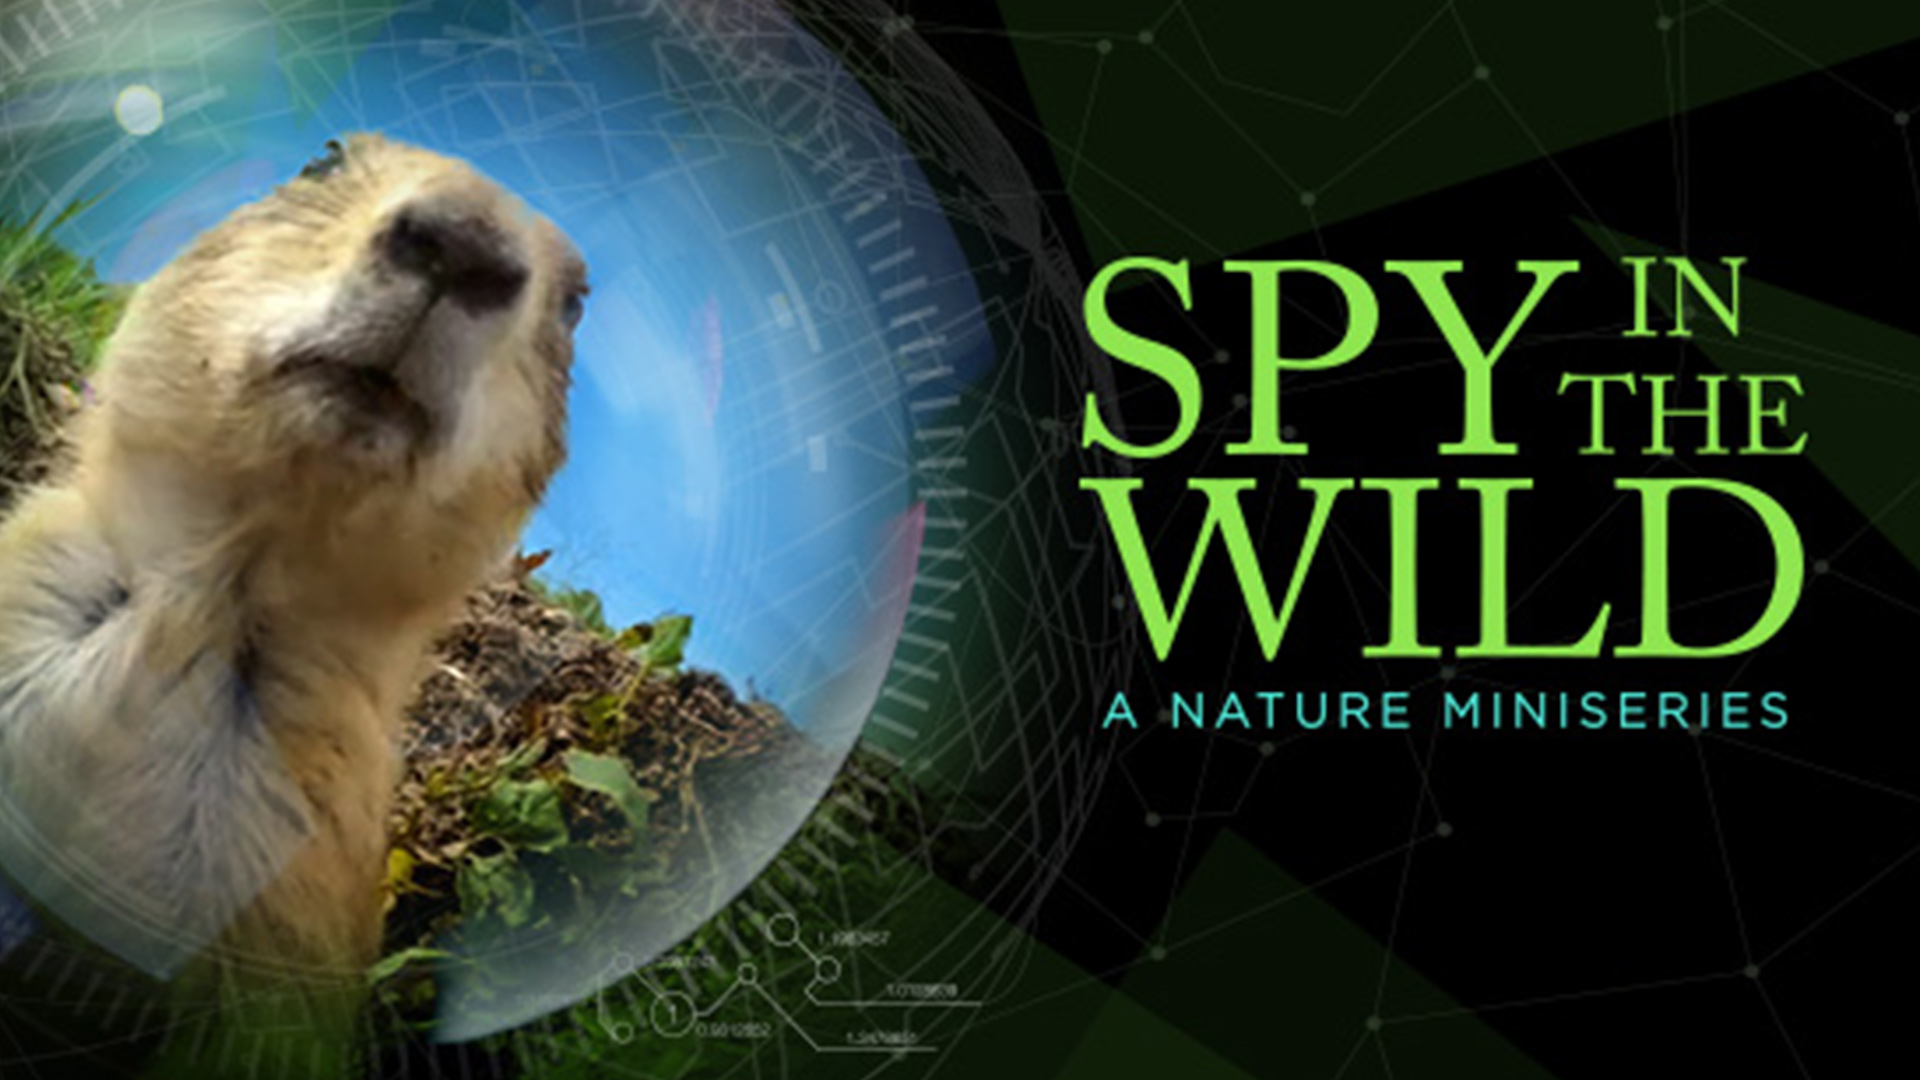 Spy in the Wild: Meet the Spies